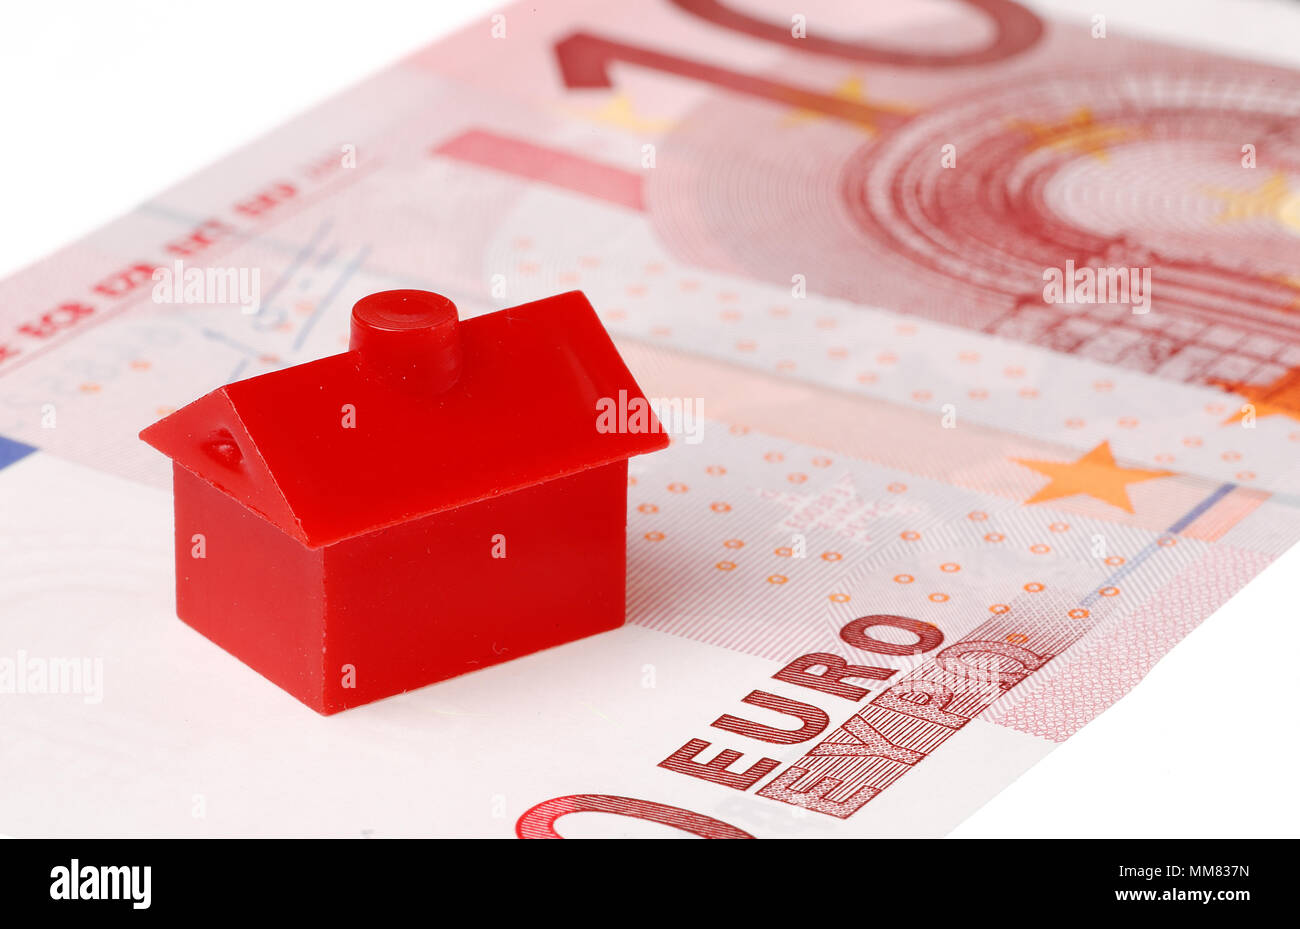 Red litle plastic house on a ten euro banknote on white background. - Stock Image